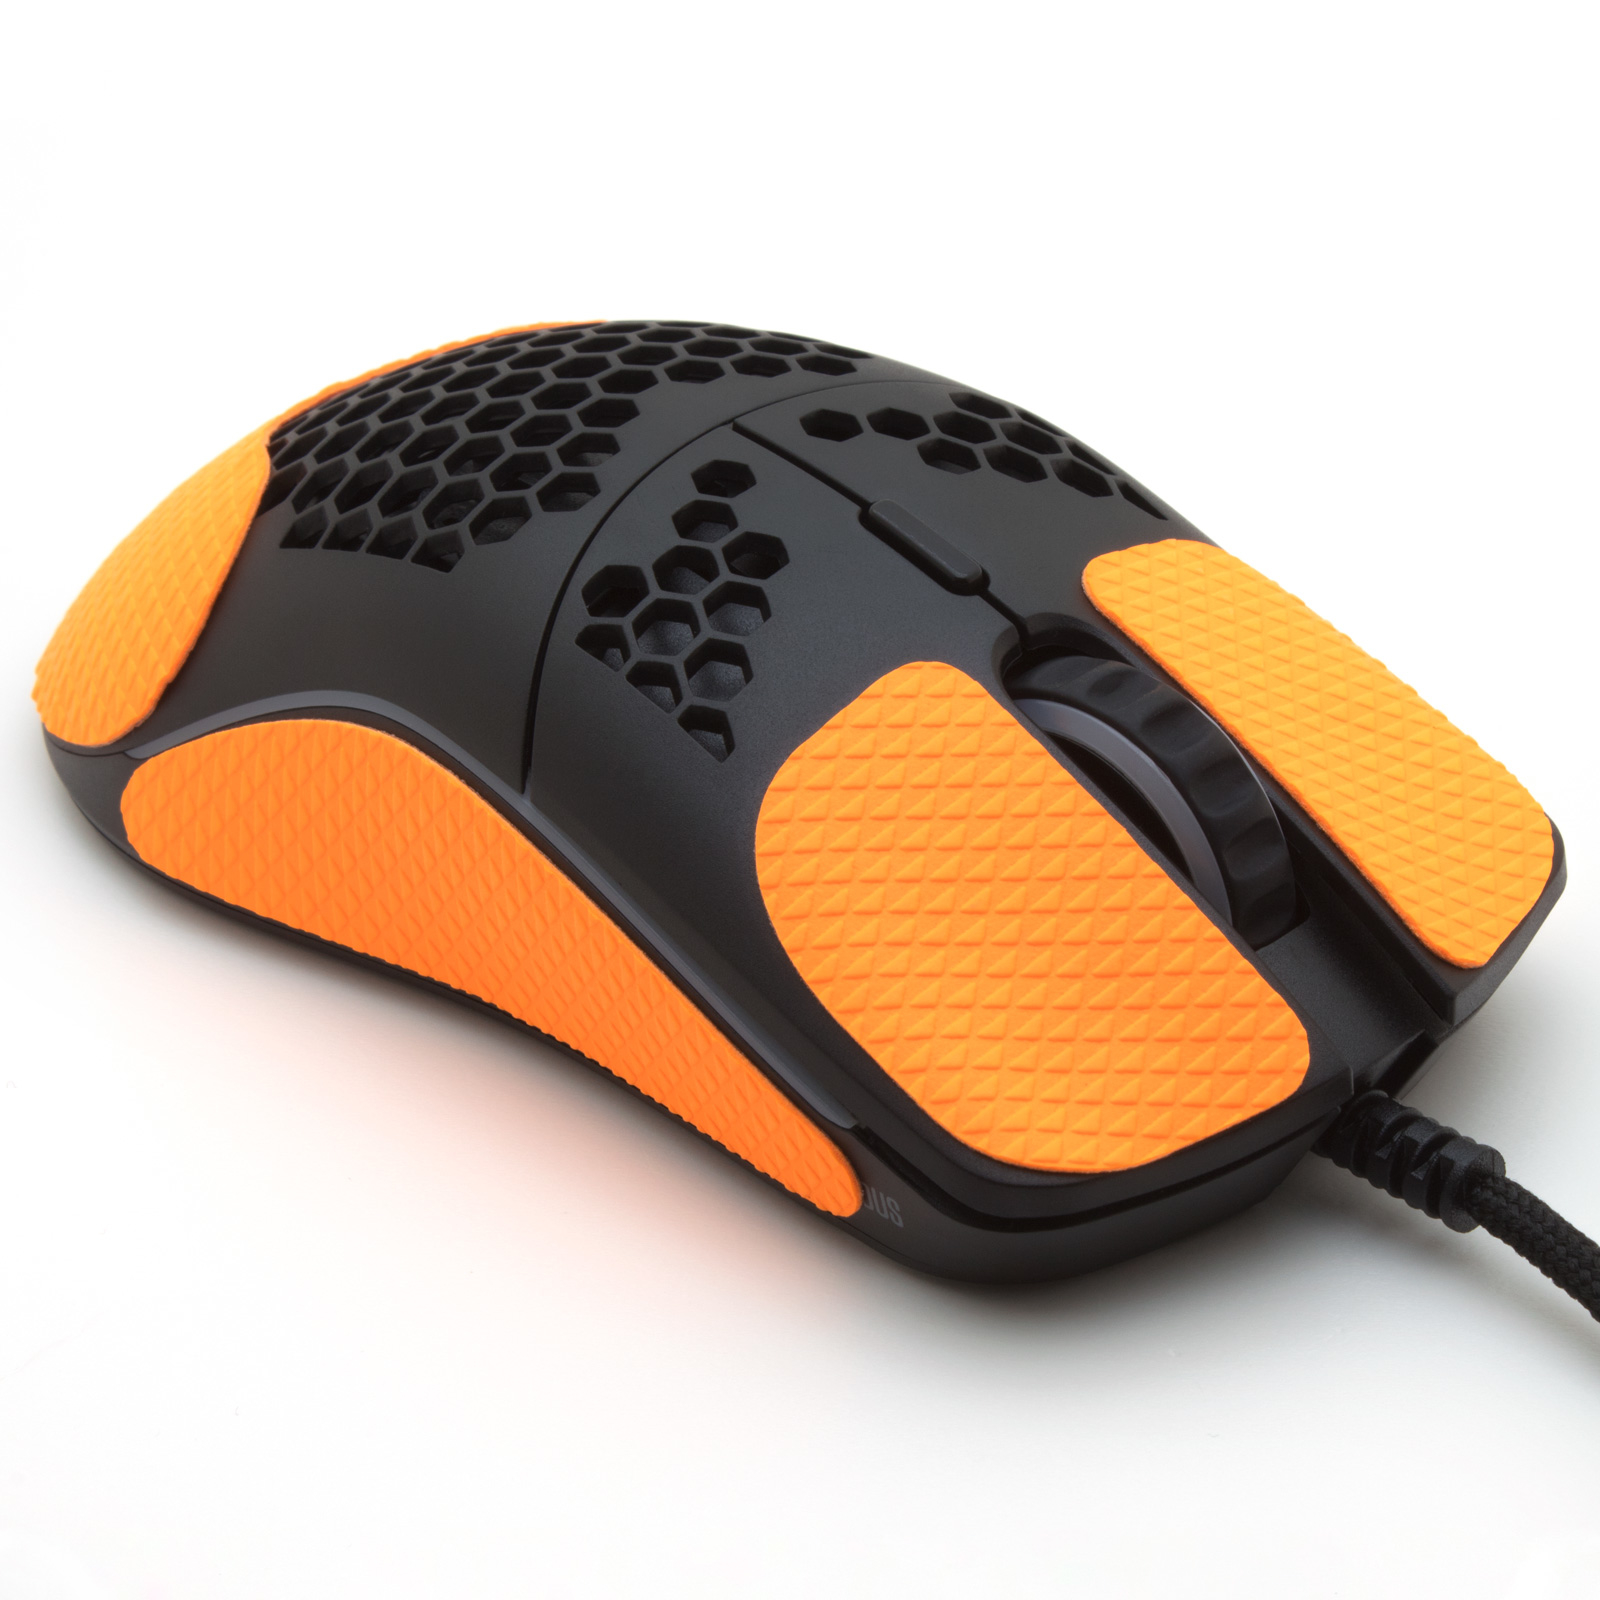 Mouse grip tape for Glorious O minus from the brand TrueGrip - front right view